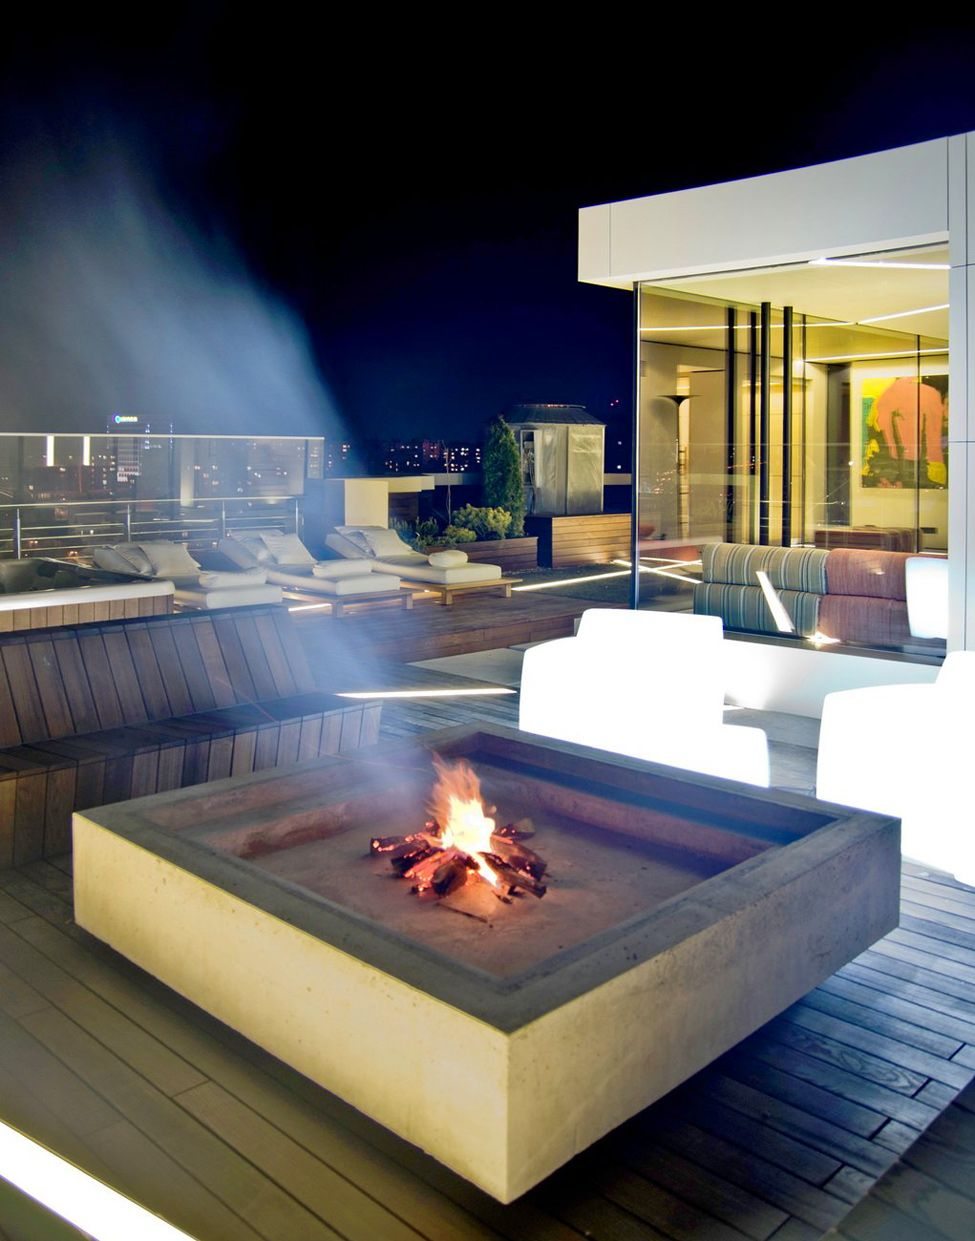 Wood fire pit on wood deck - I Love Fire Pits But I Don T Think It S Practical